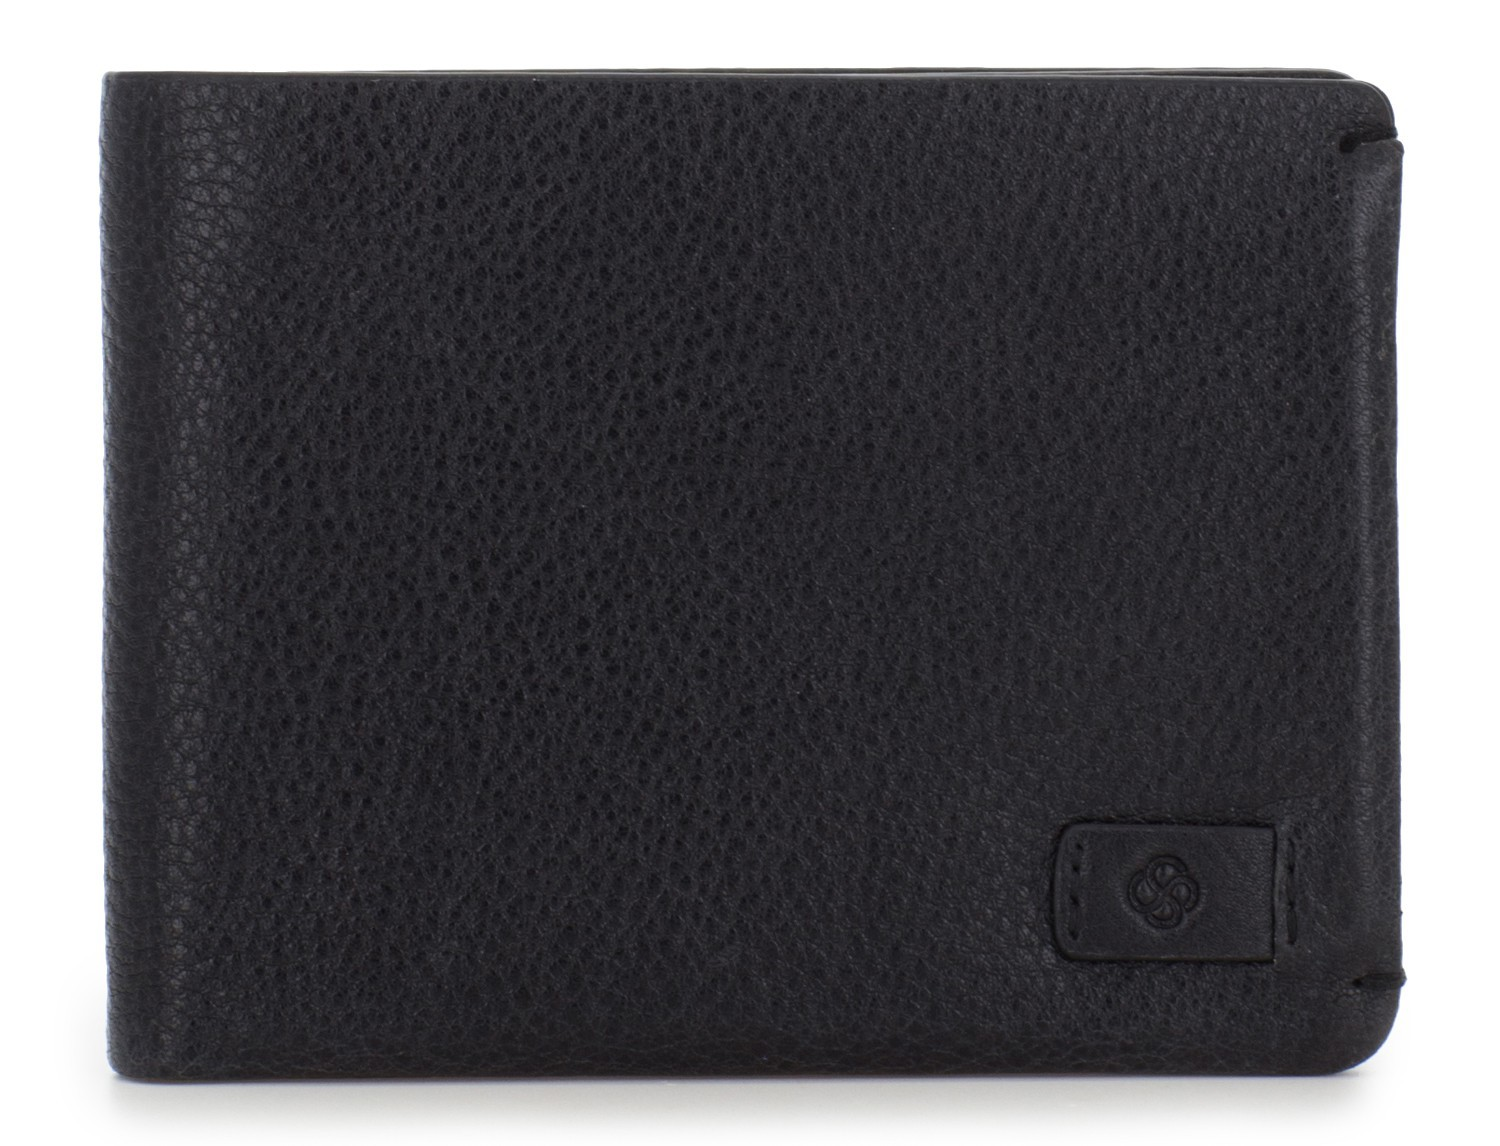 leather wallet for credit cards black front